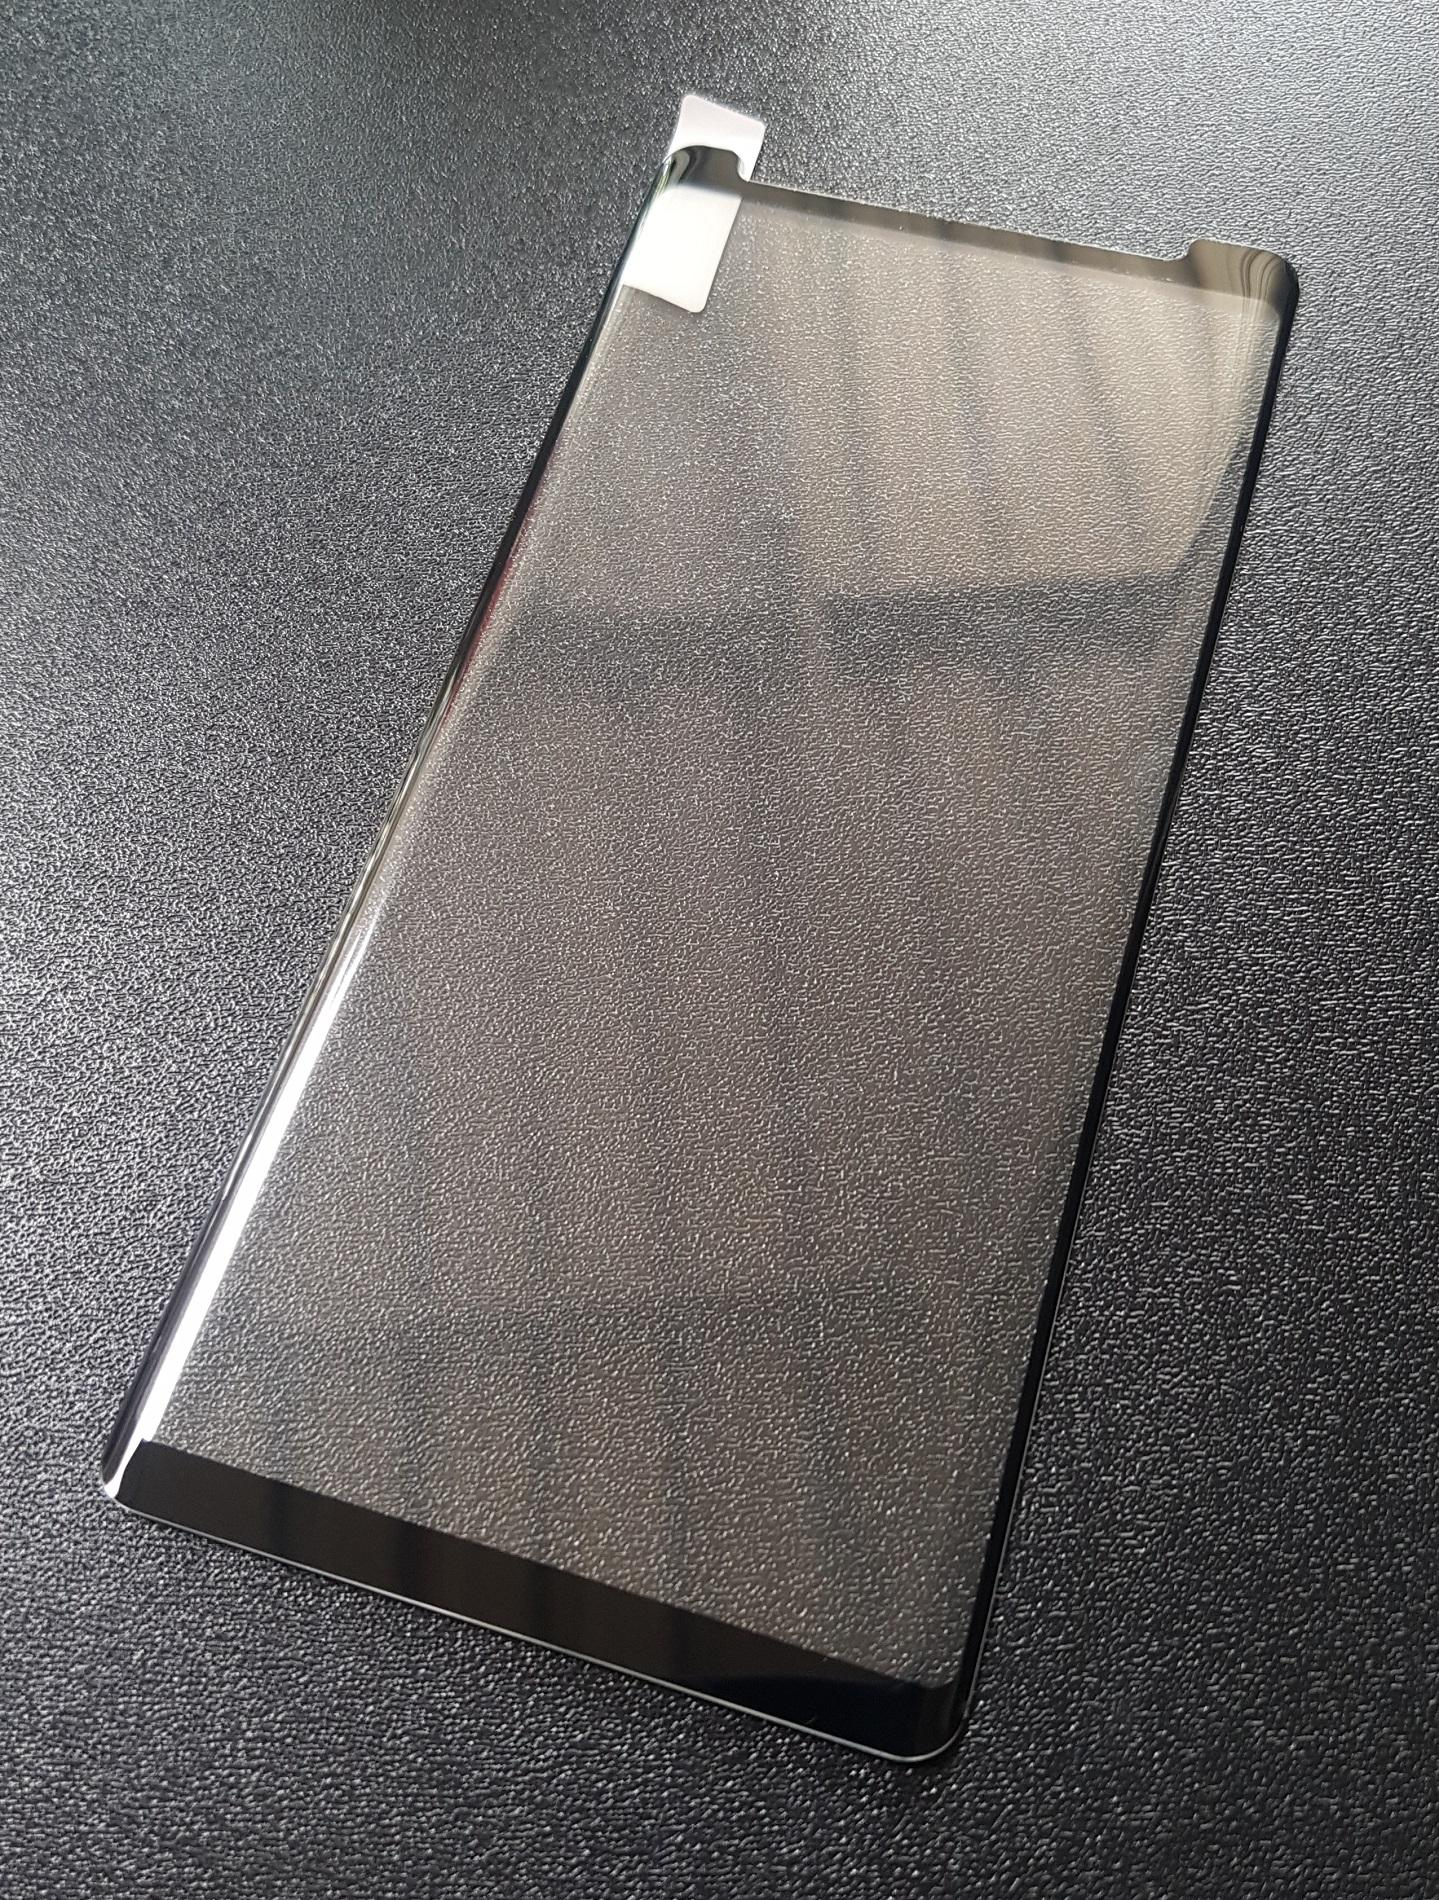 Tempered Glass Protector Curved Samsung Note 8 / N950F 6.3 Inch Anti Gores Kaca - Exclusive Full Layar Melengkung Hitam